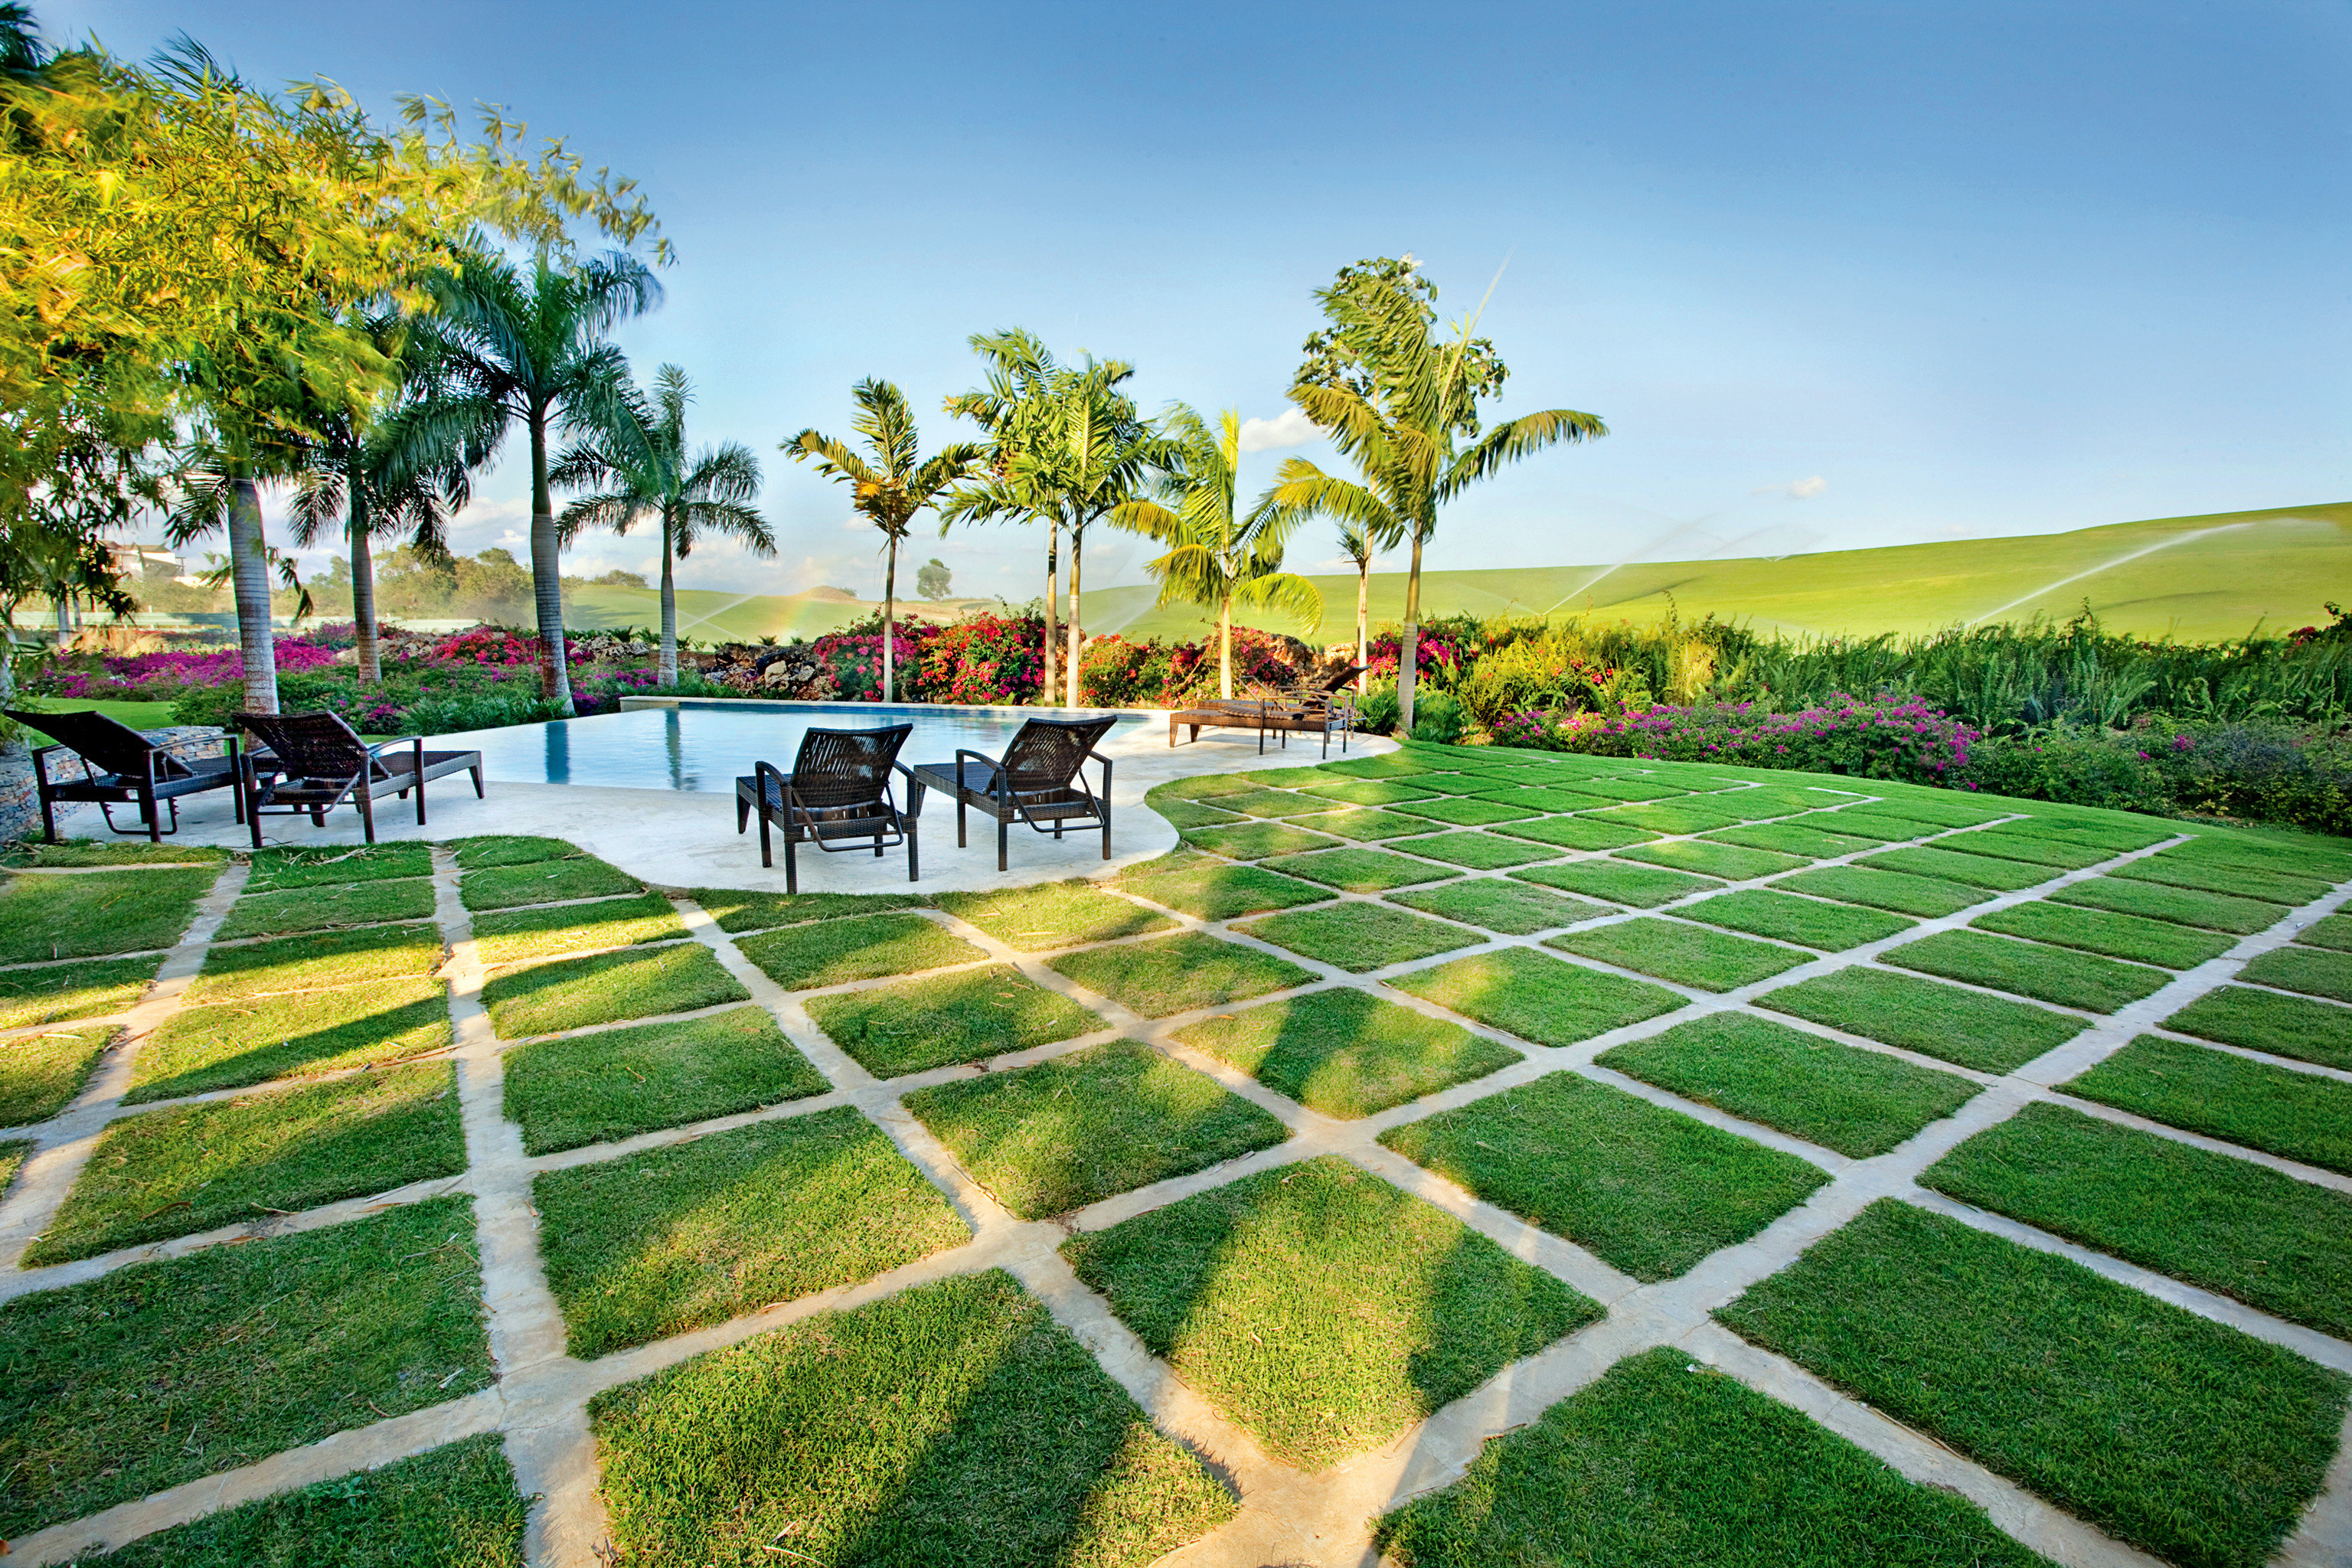 Garden Grounds Lounge Luxury Pool grass tree sky leisure structure lawn residential area sport venue Resort agriculture walkway arecales stadium park